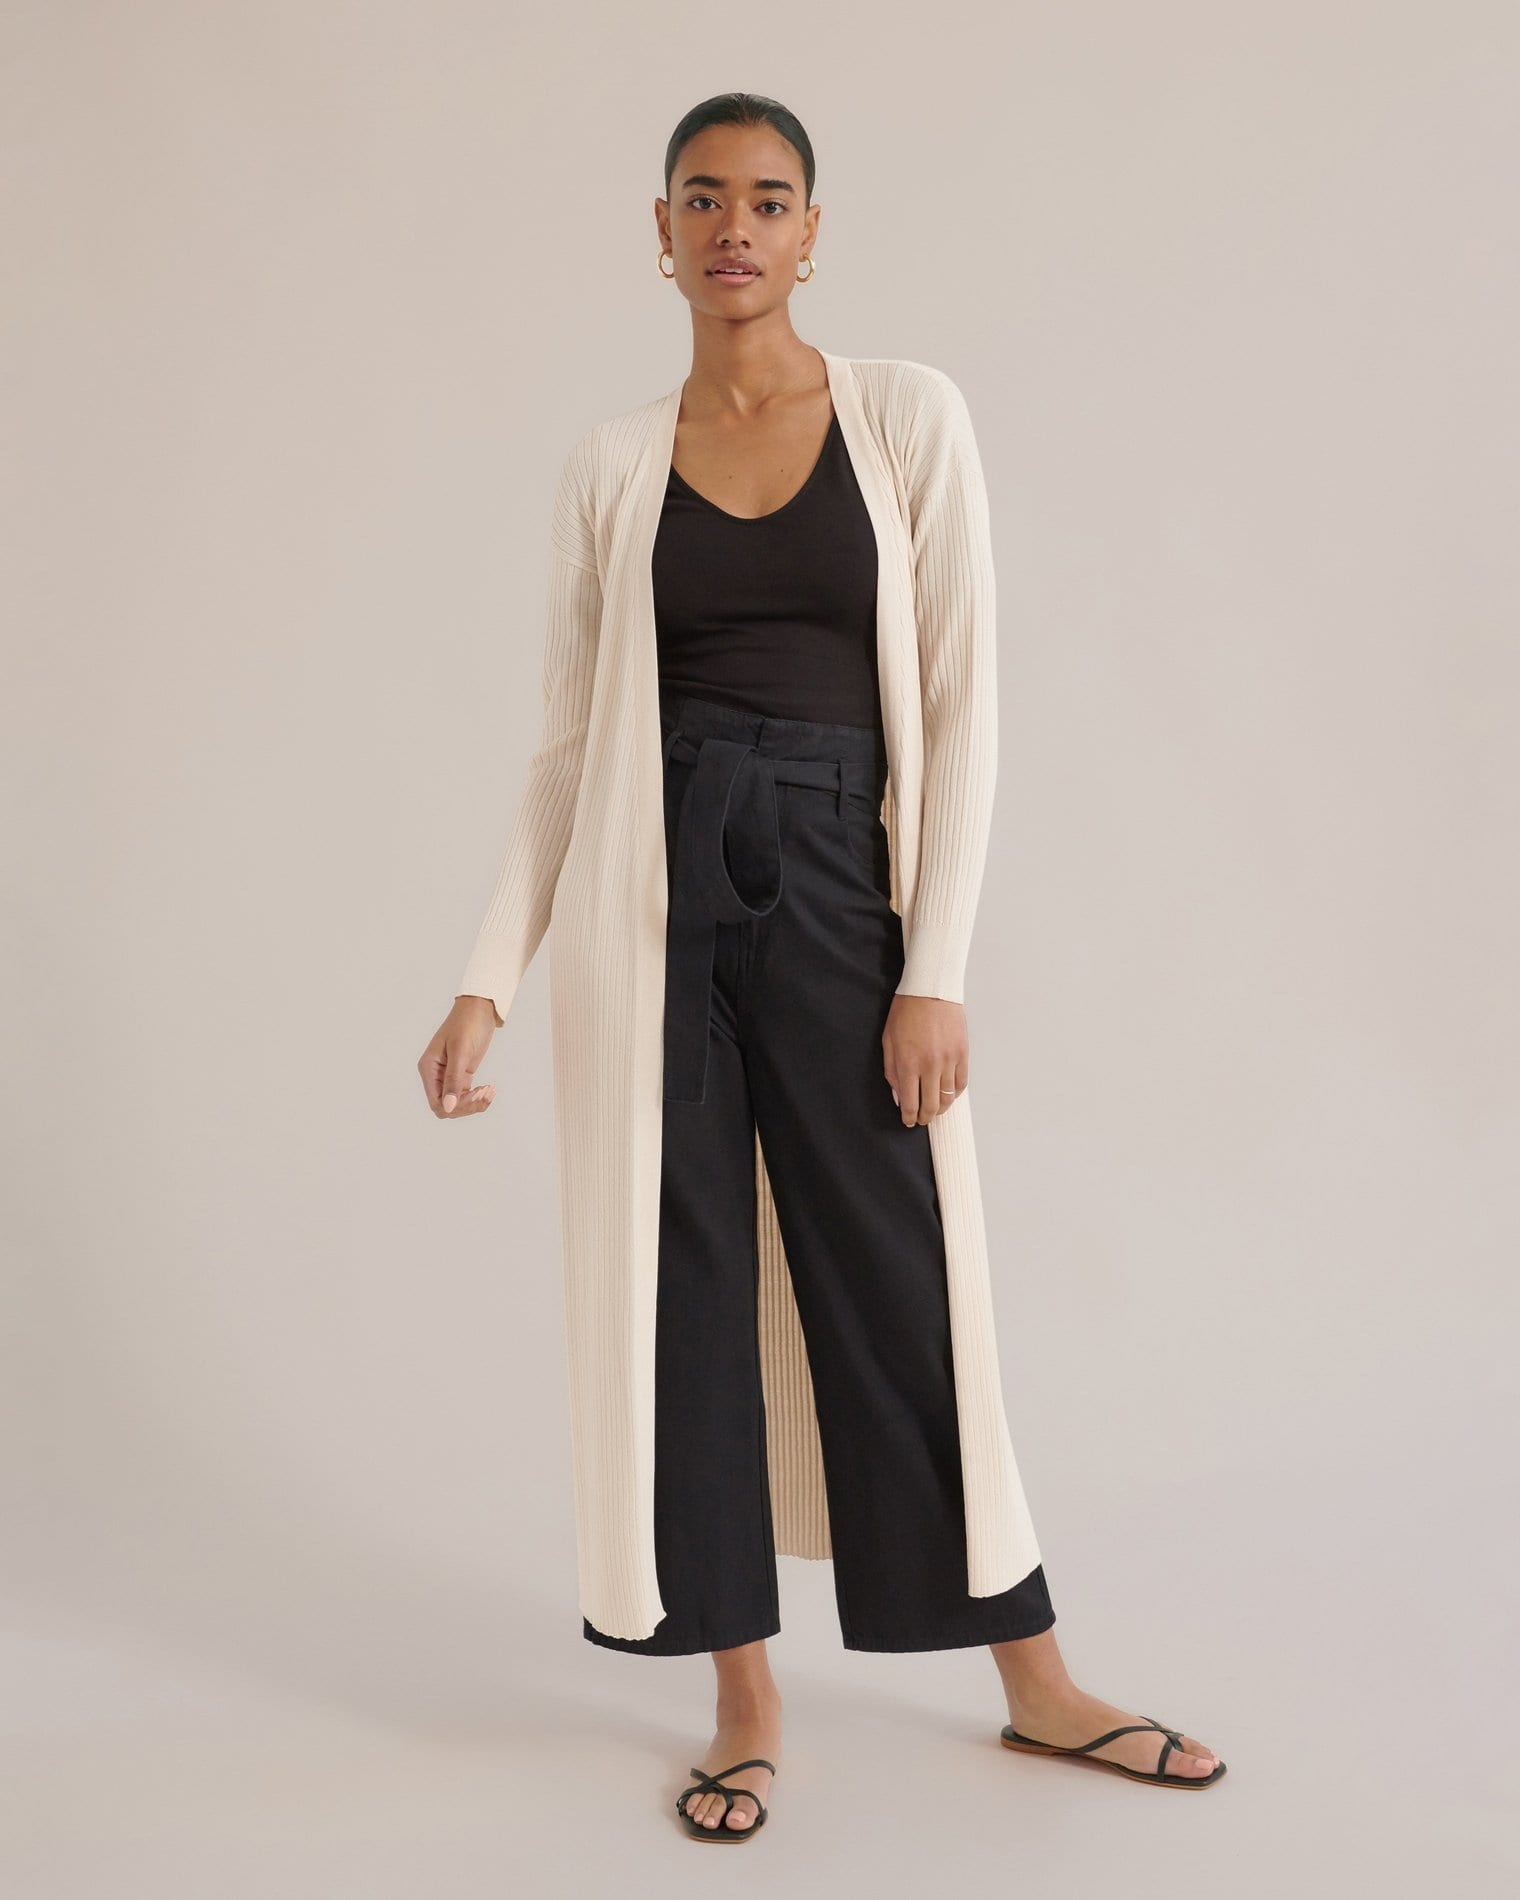 Callie Long Open-Front Cardigan / Neighborhood Goods